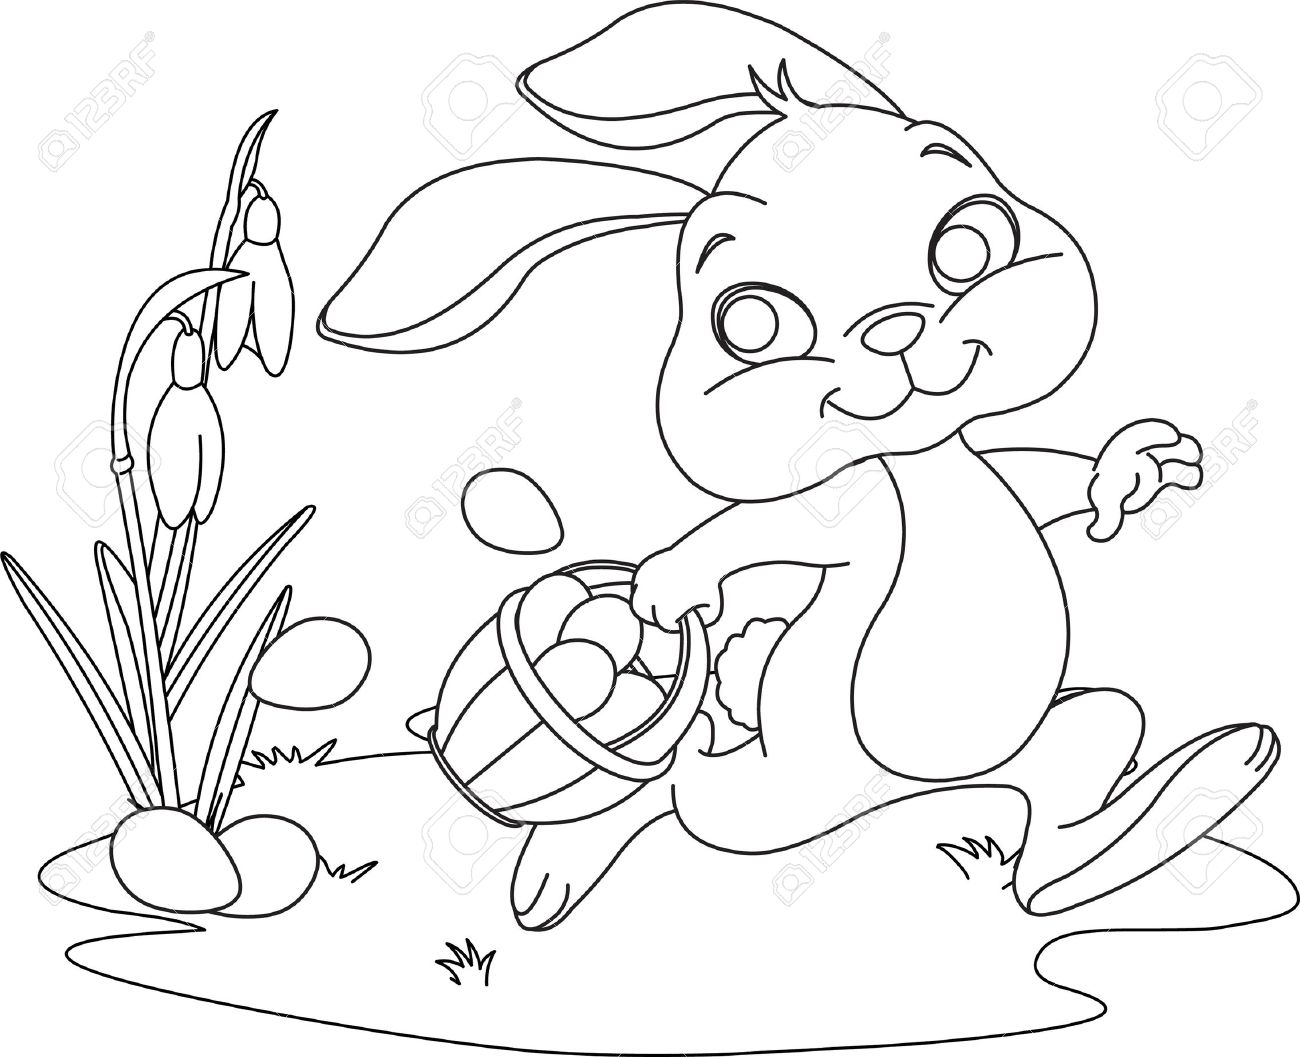 easter bunny coloring pages free - easter bunny ears coloring pages download and print for free